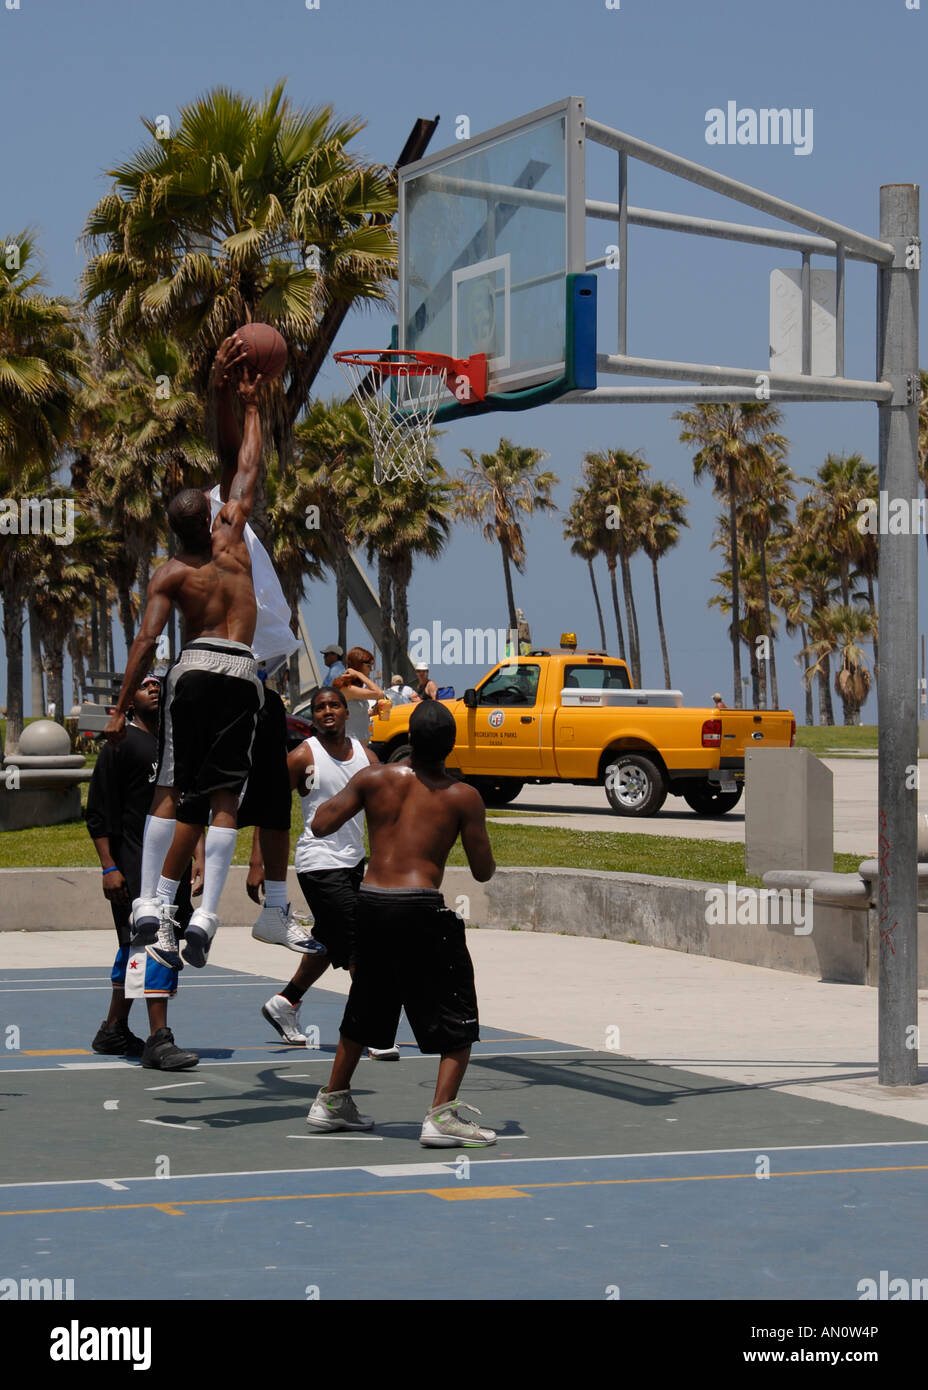 Locals shooting hoops at Venice Beach, California, USA - Stock Image